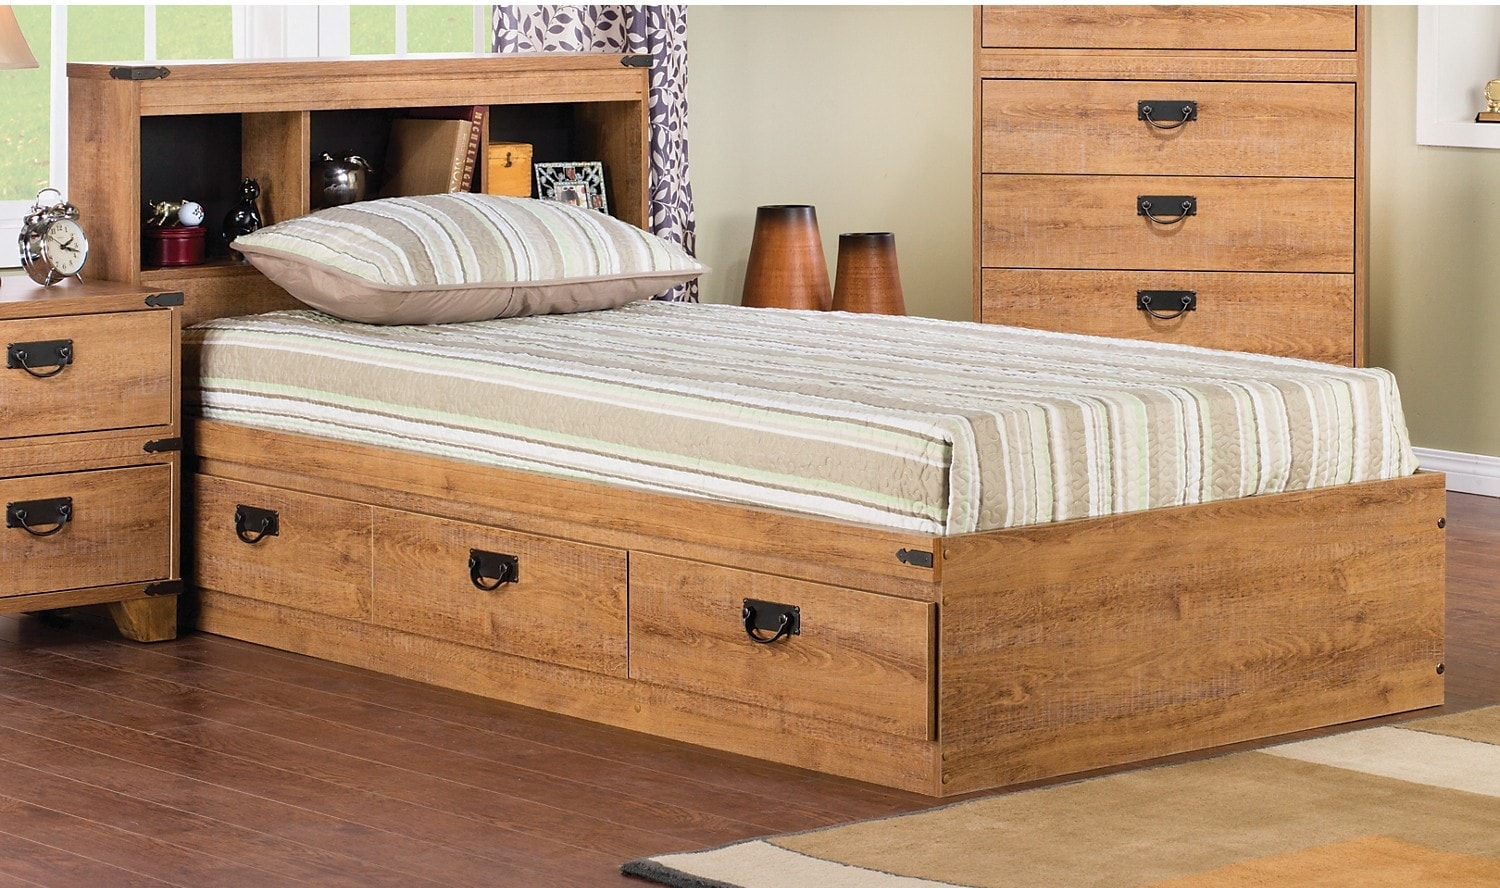 Driftwood Mates Bed with Headboard